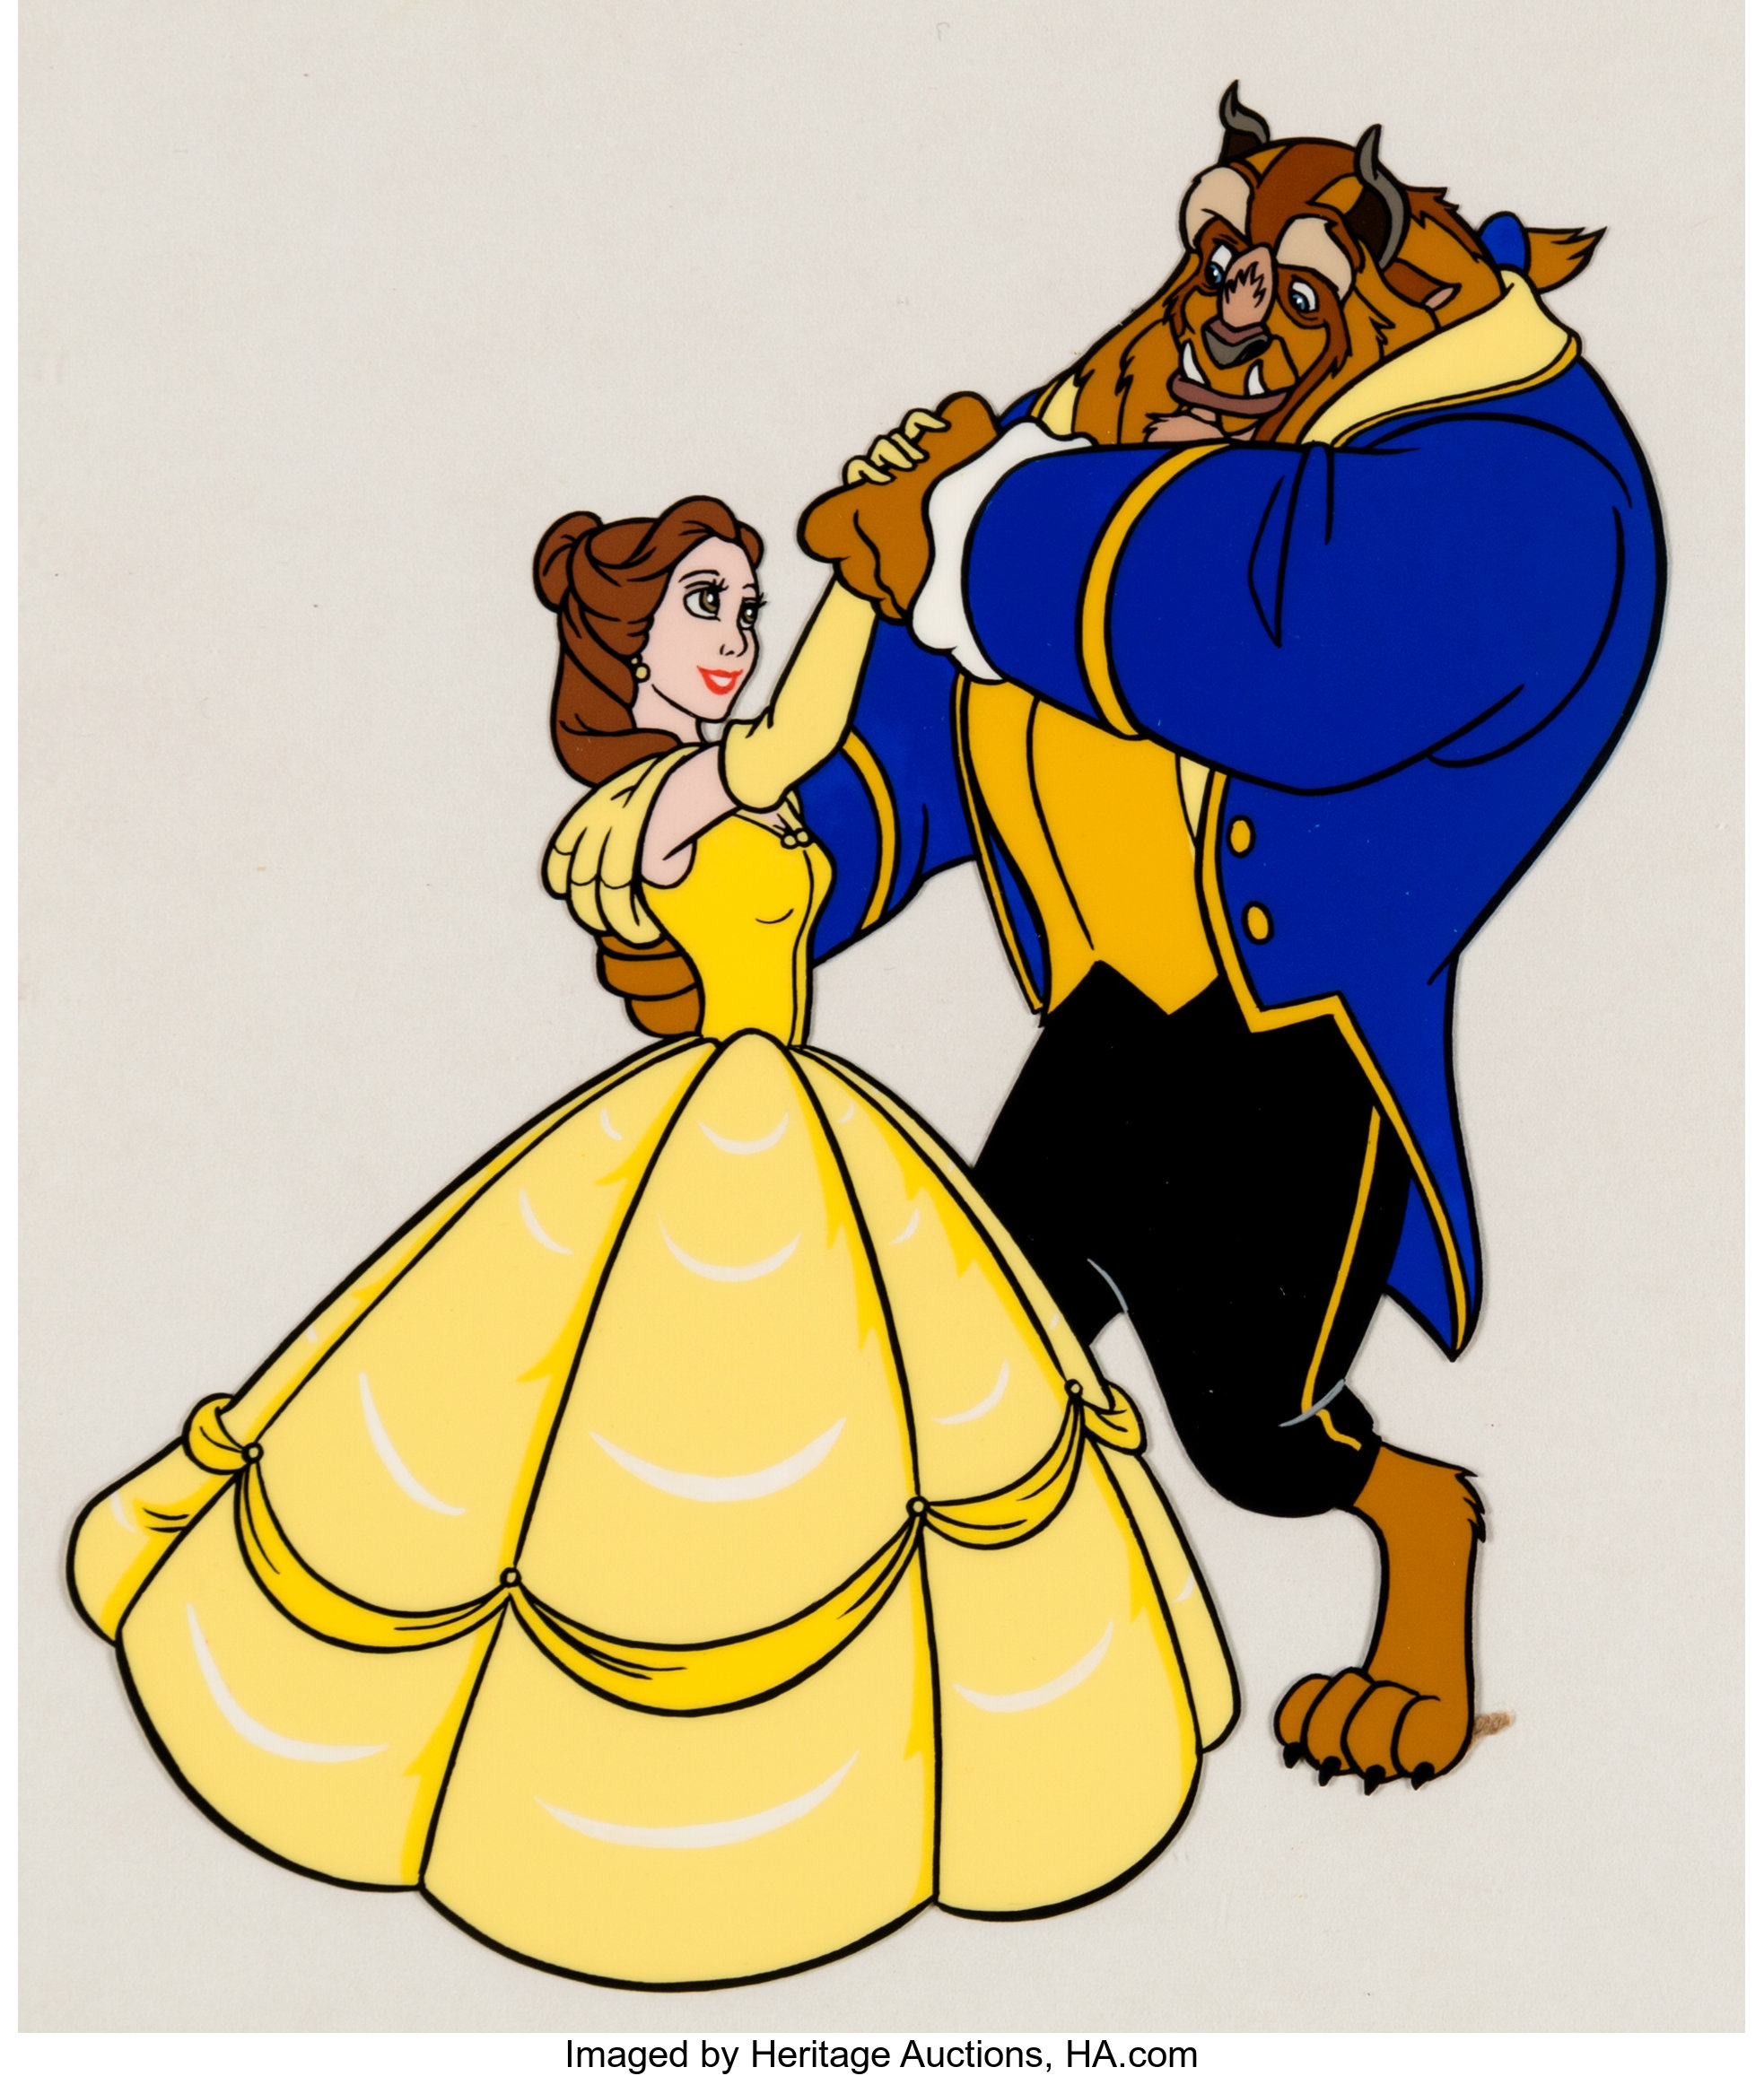 Beauty And The Beast Disney Consumer Products Color Model Cel Walt Lot 15221 Heritage Auctions